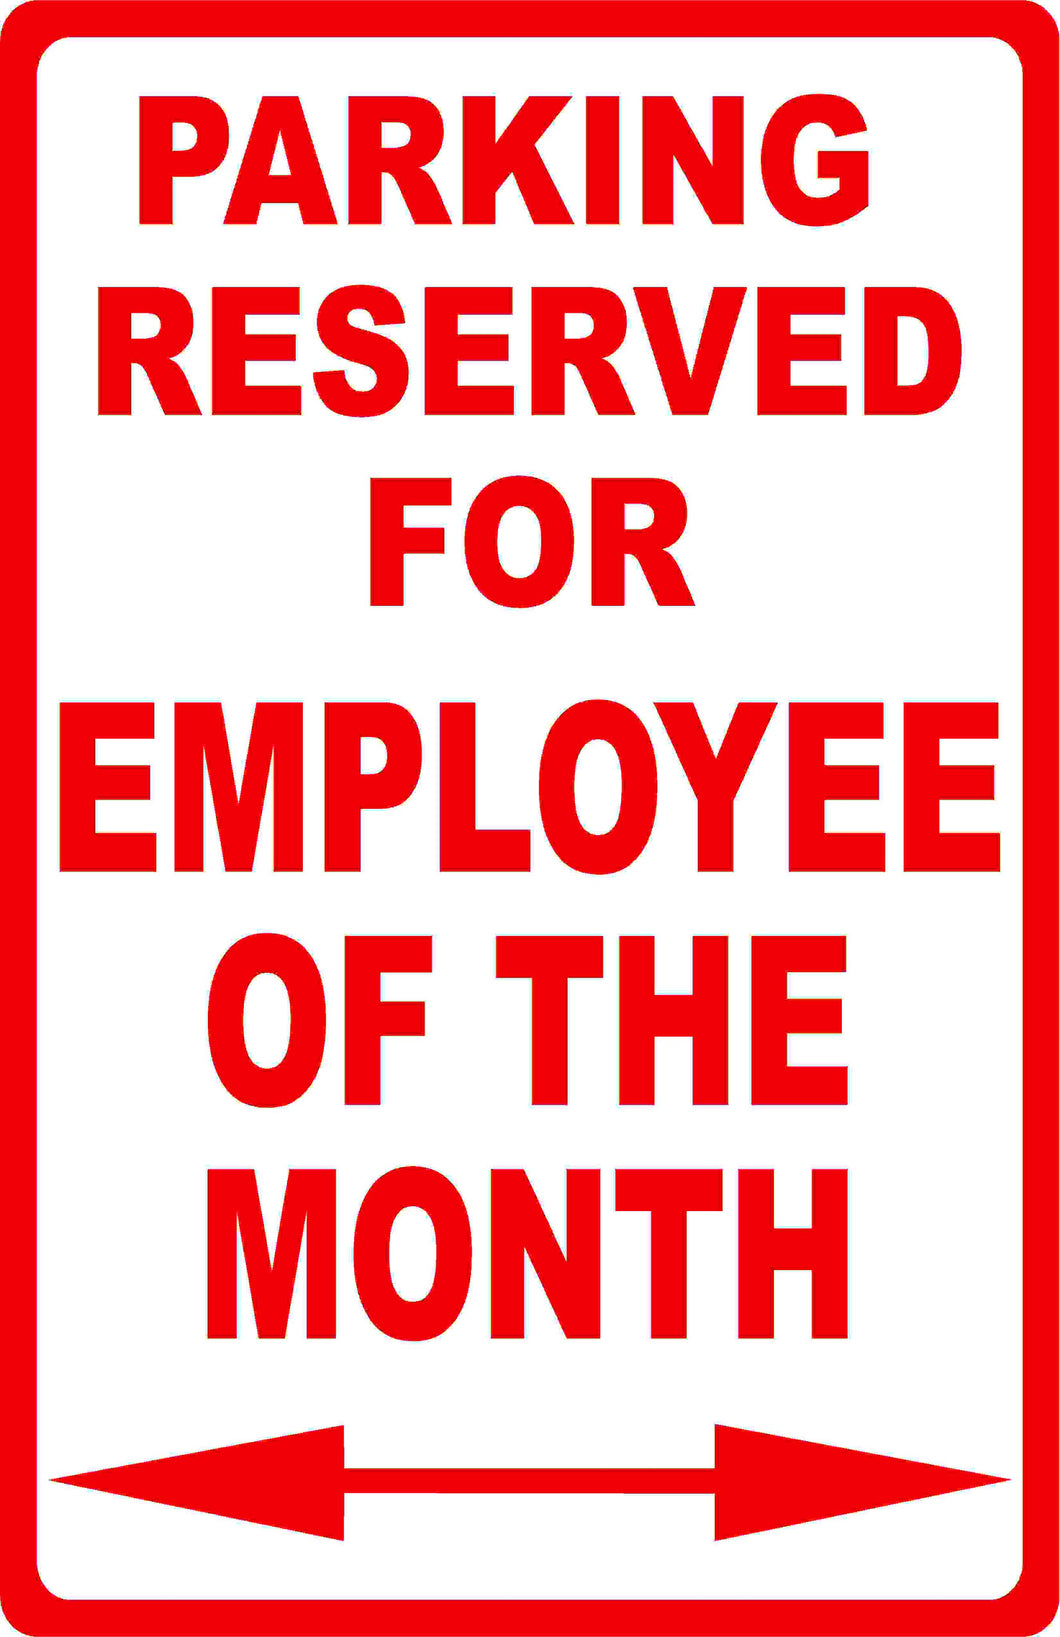 Parking Reserved for Employee of the Month Sign - Signs & Decals by SalaGraphics